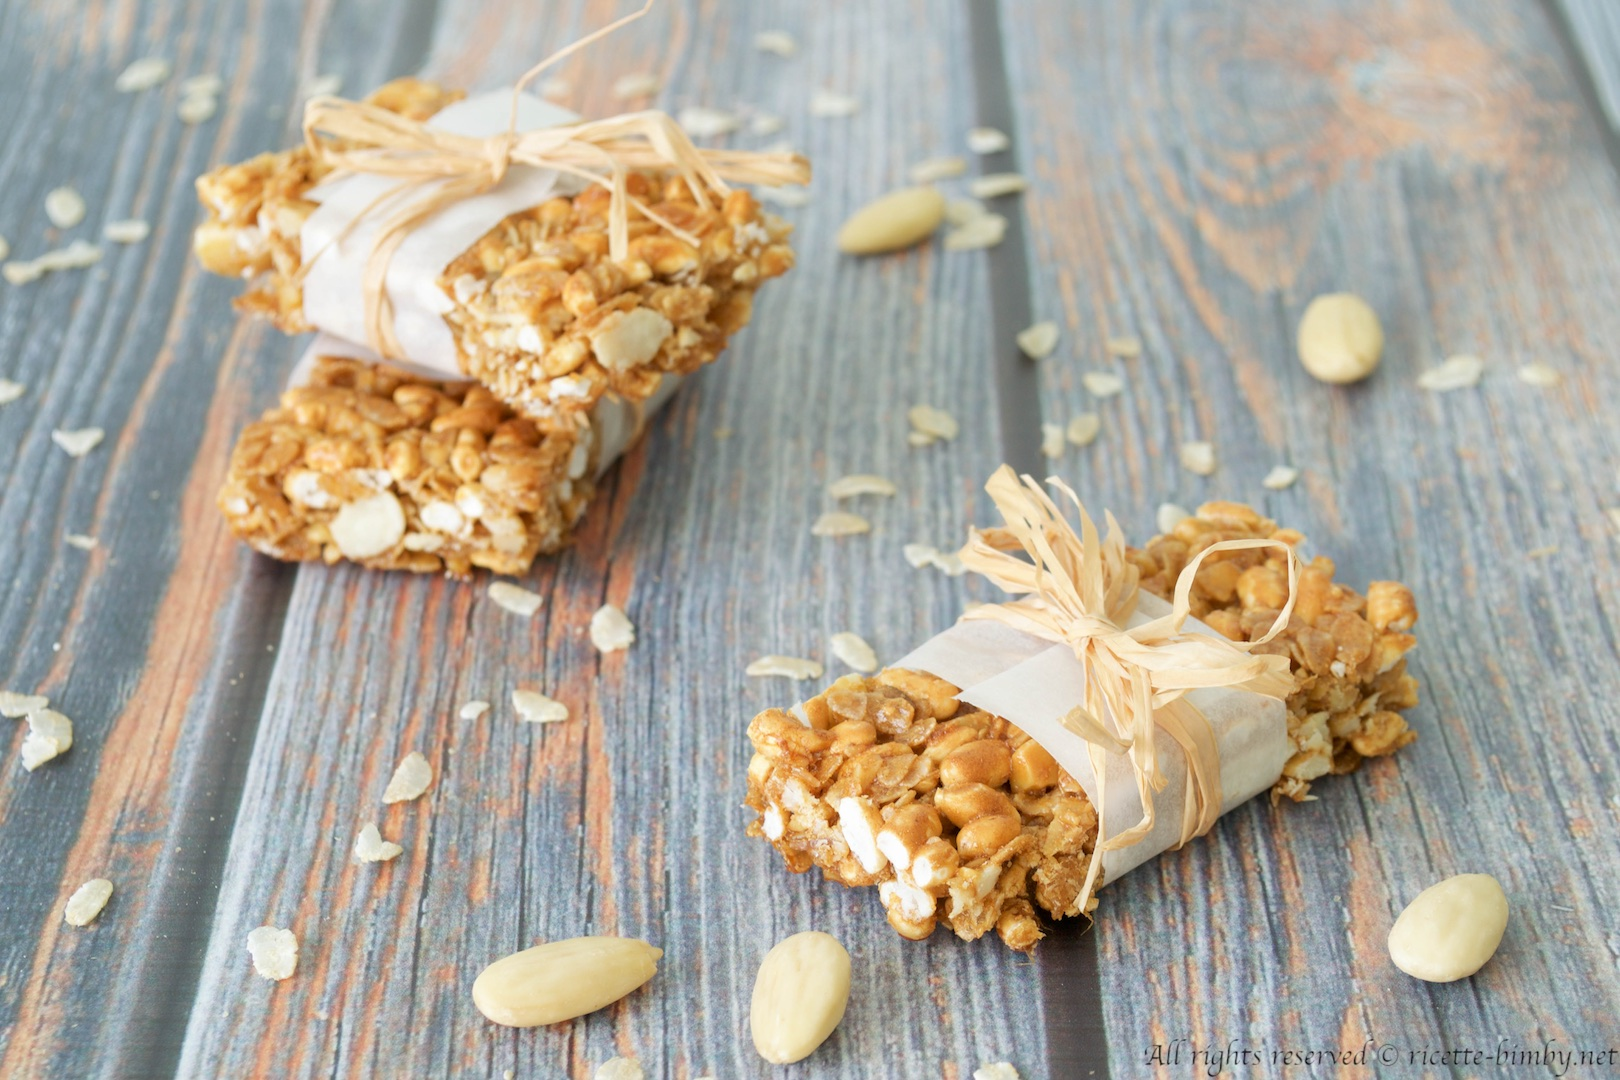 Thermomix oat and puffed rice bars